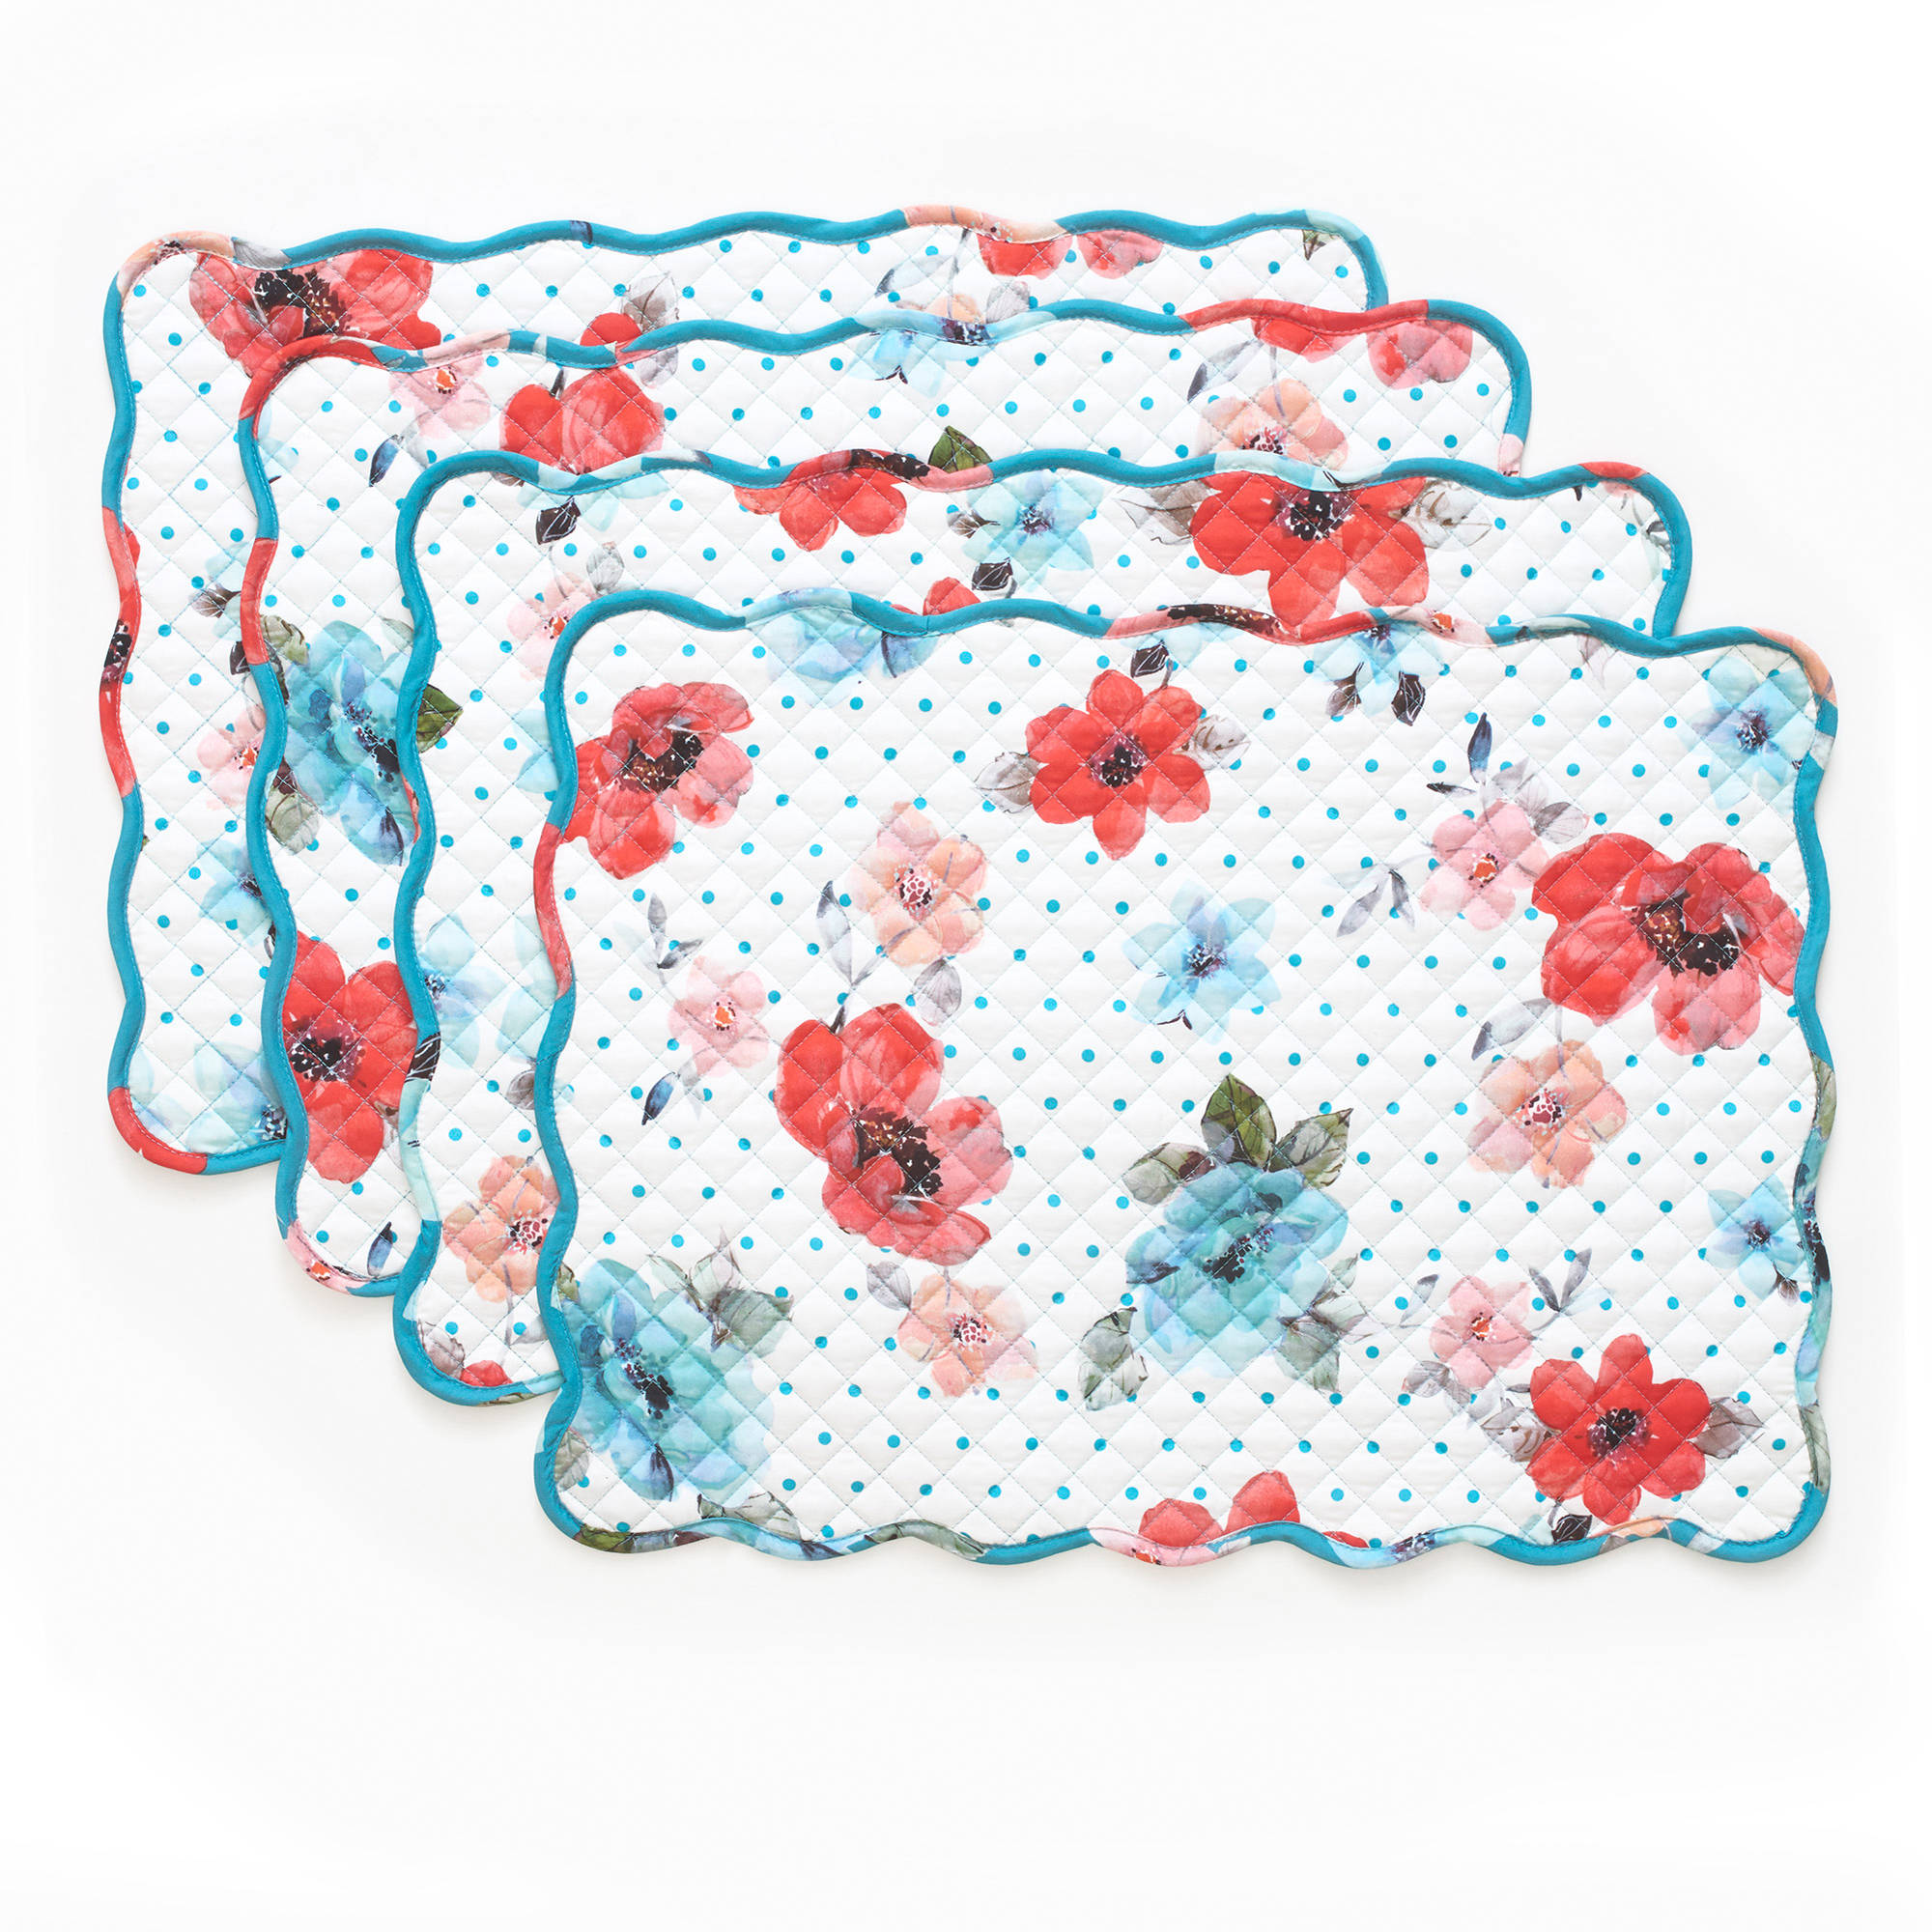 The Pioneer Woman Vintage Bloom Reversible Placemat, 4pk